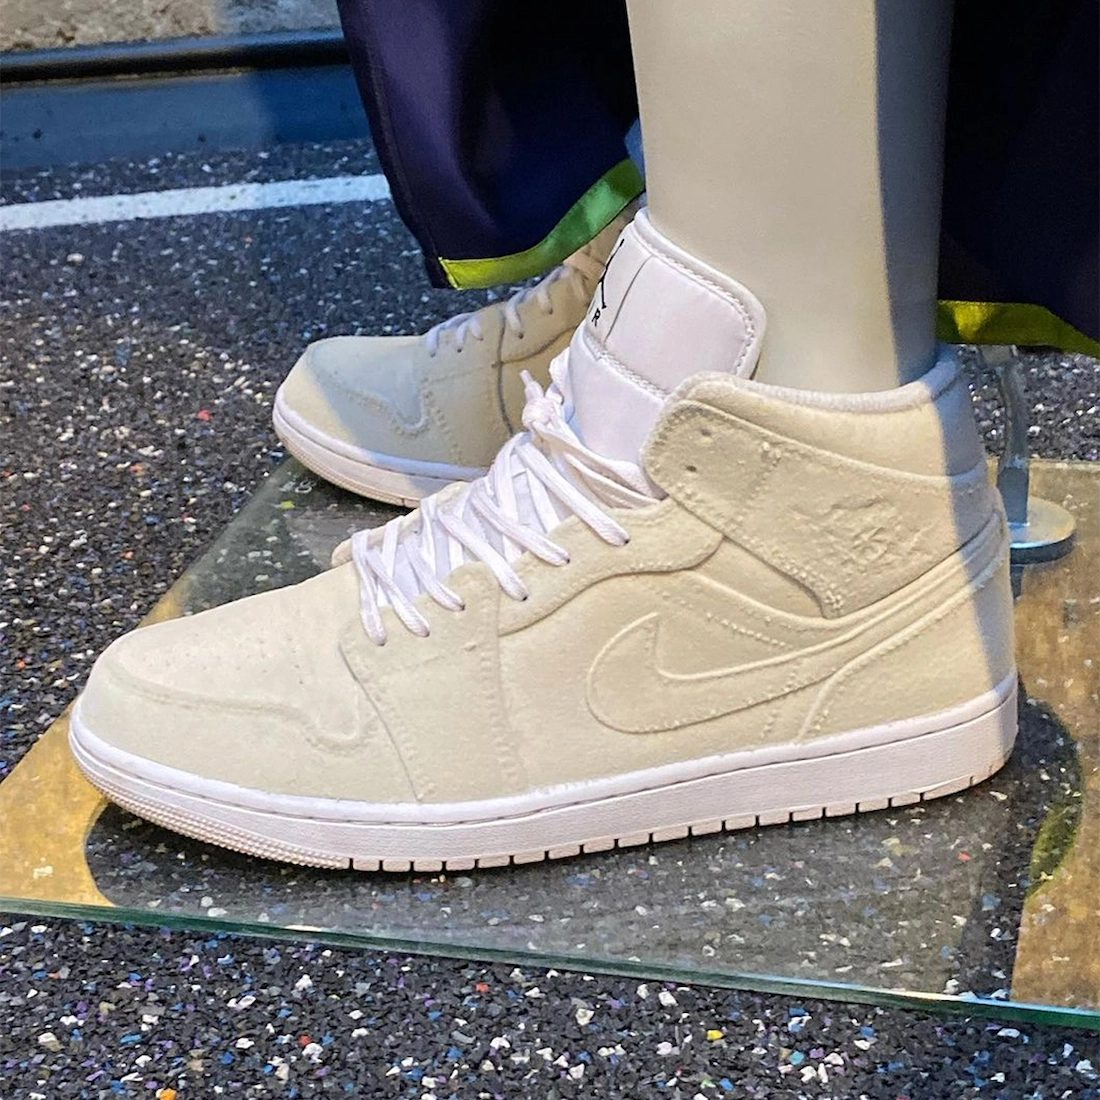 pigalle-nike-air-jordan-1-mid-velvet-release-2021-fall-winter